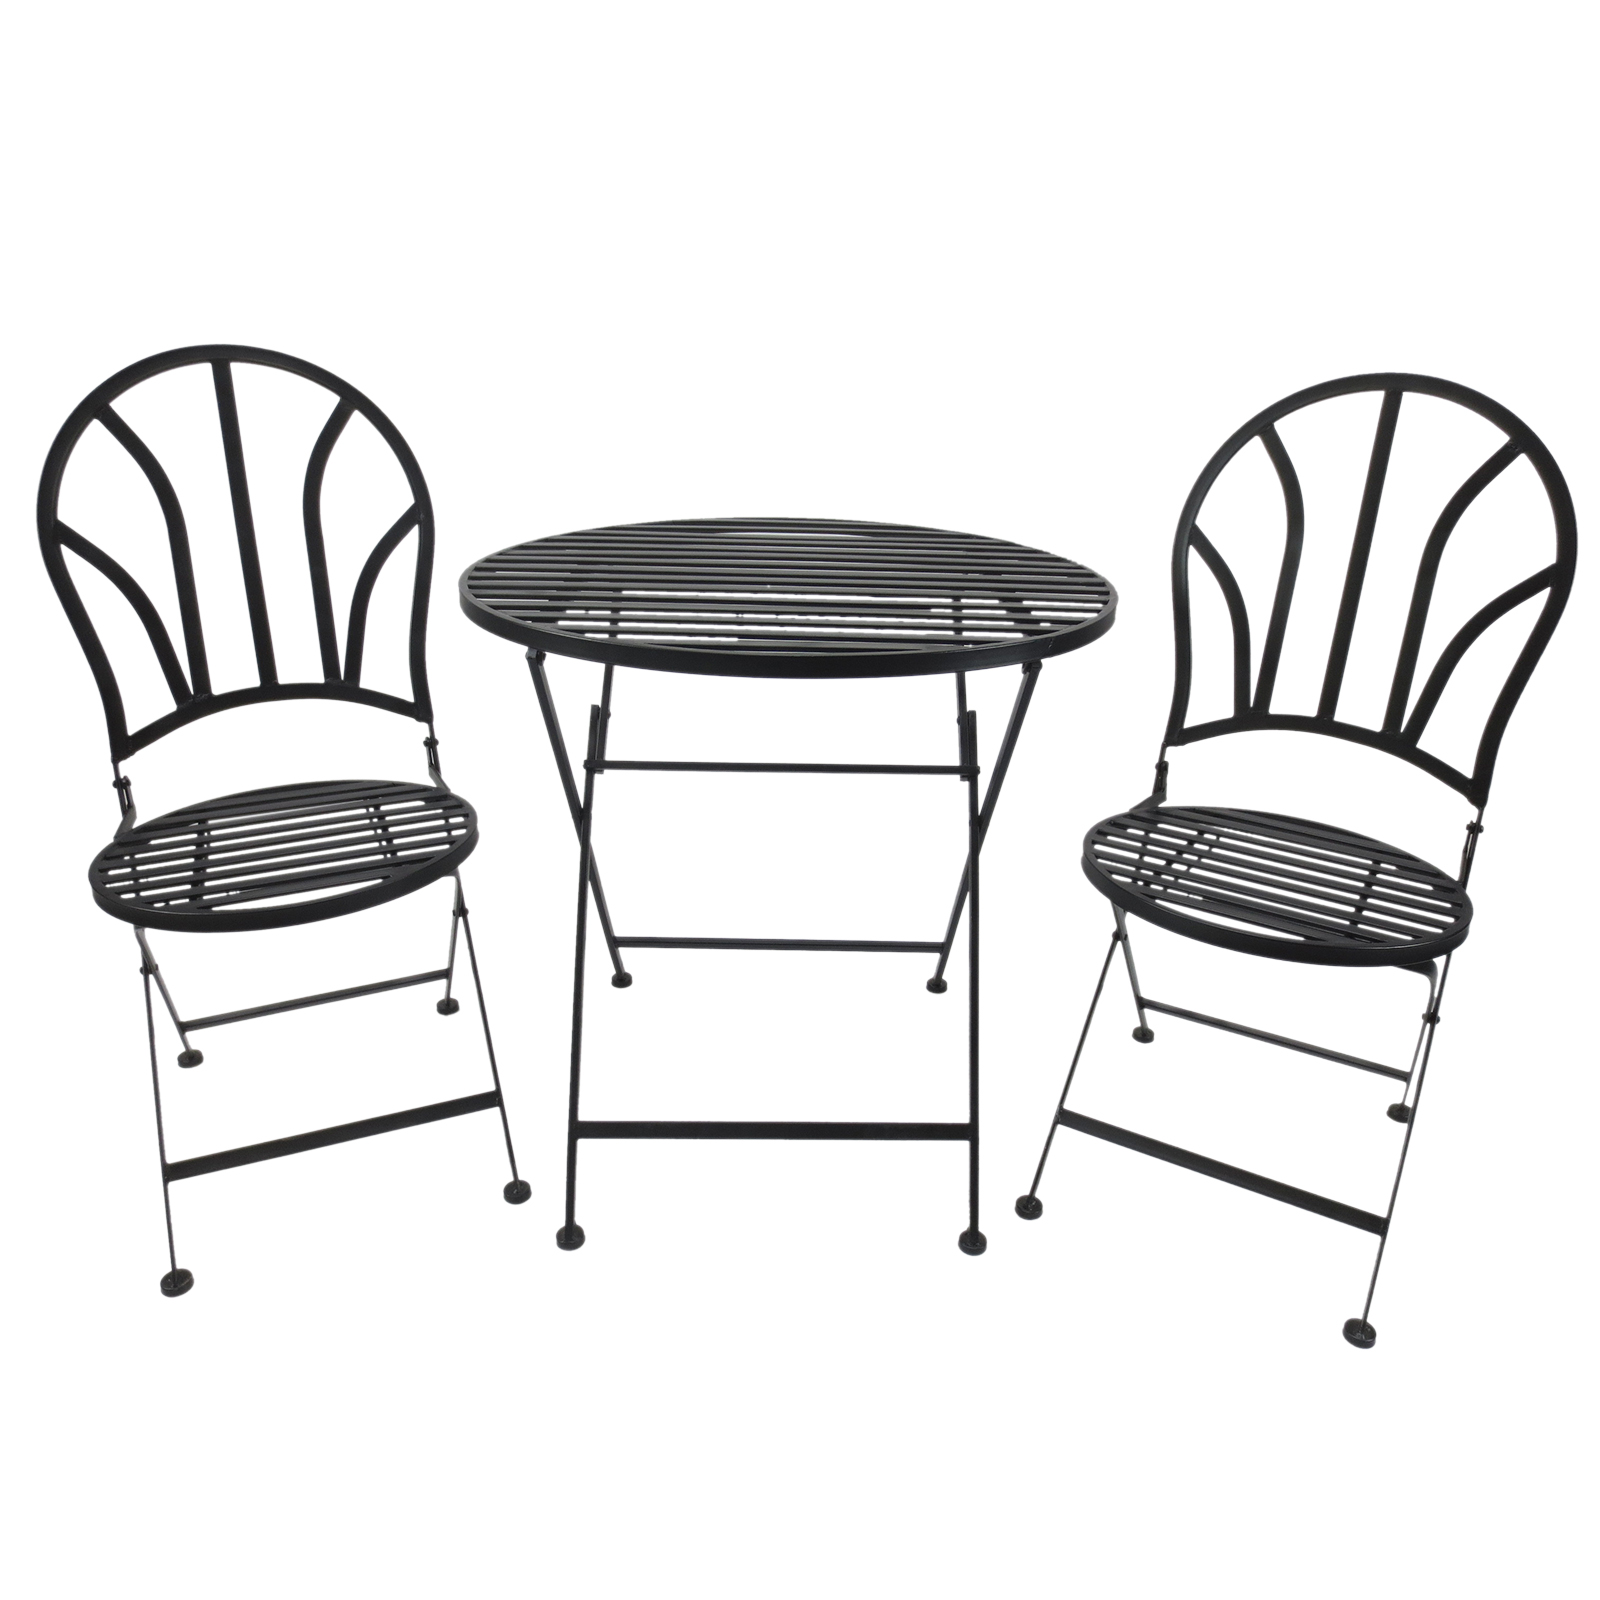 Outsunny Dining Set 3 Piece Coffee Table And 2 Chairs Bistro Metal Ф70x70 Cm Black